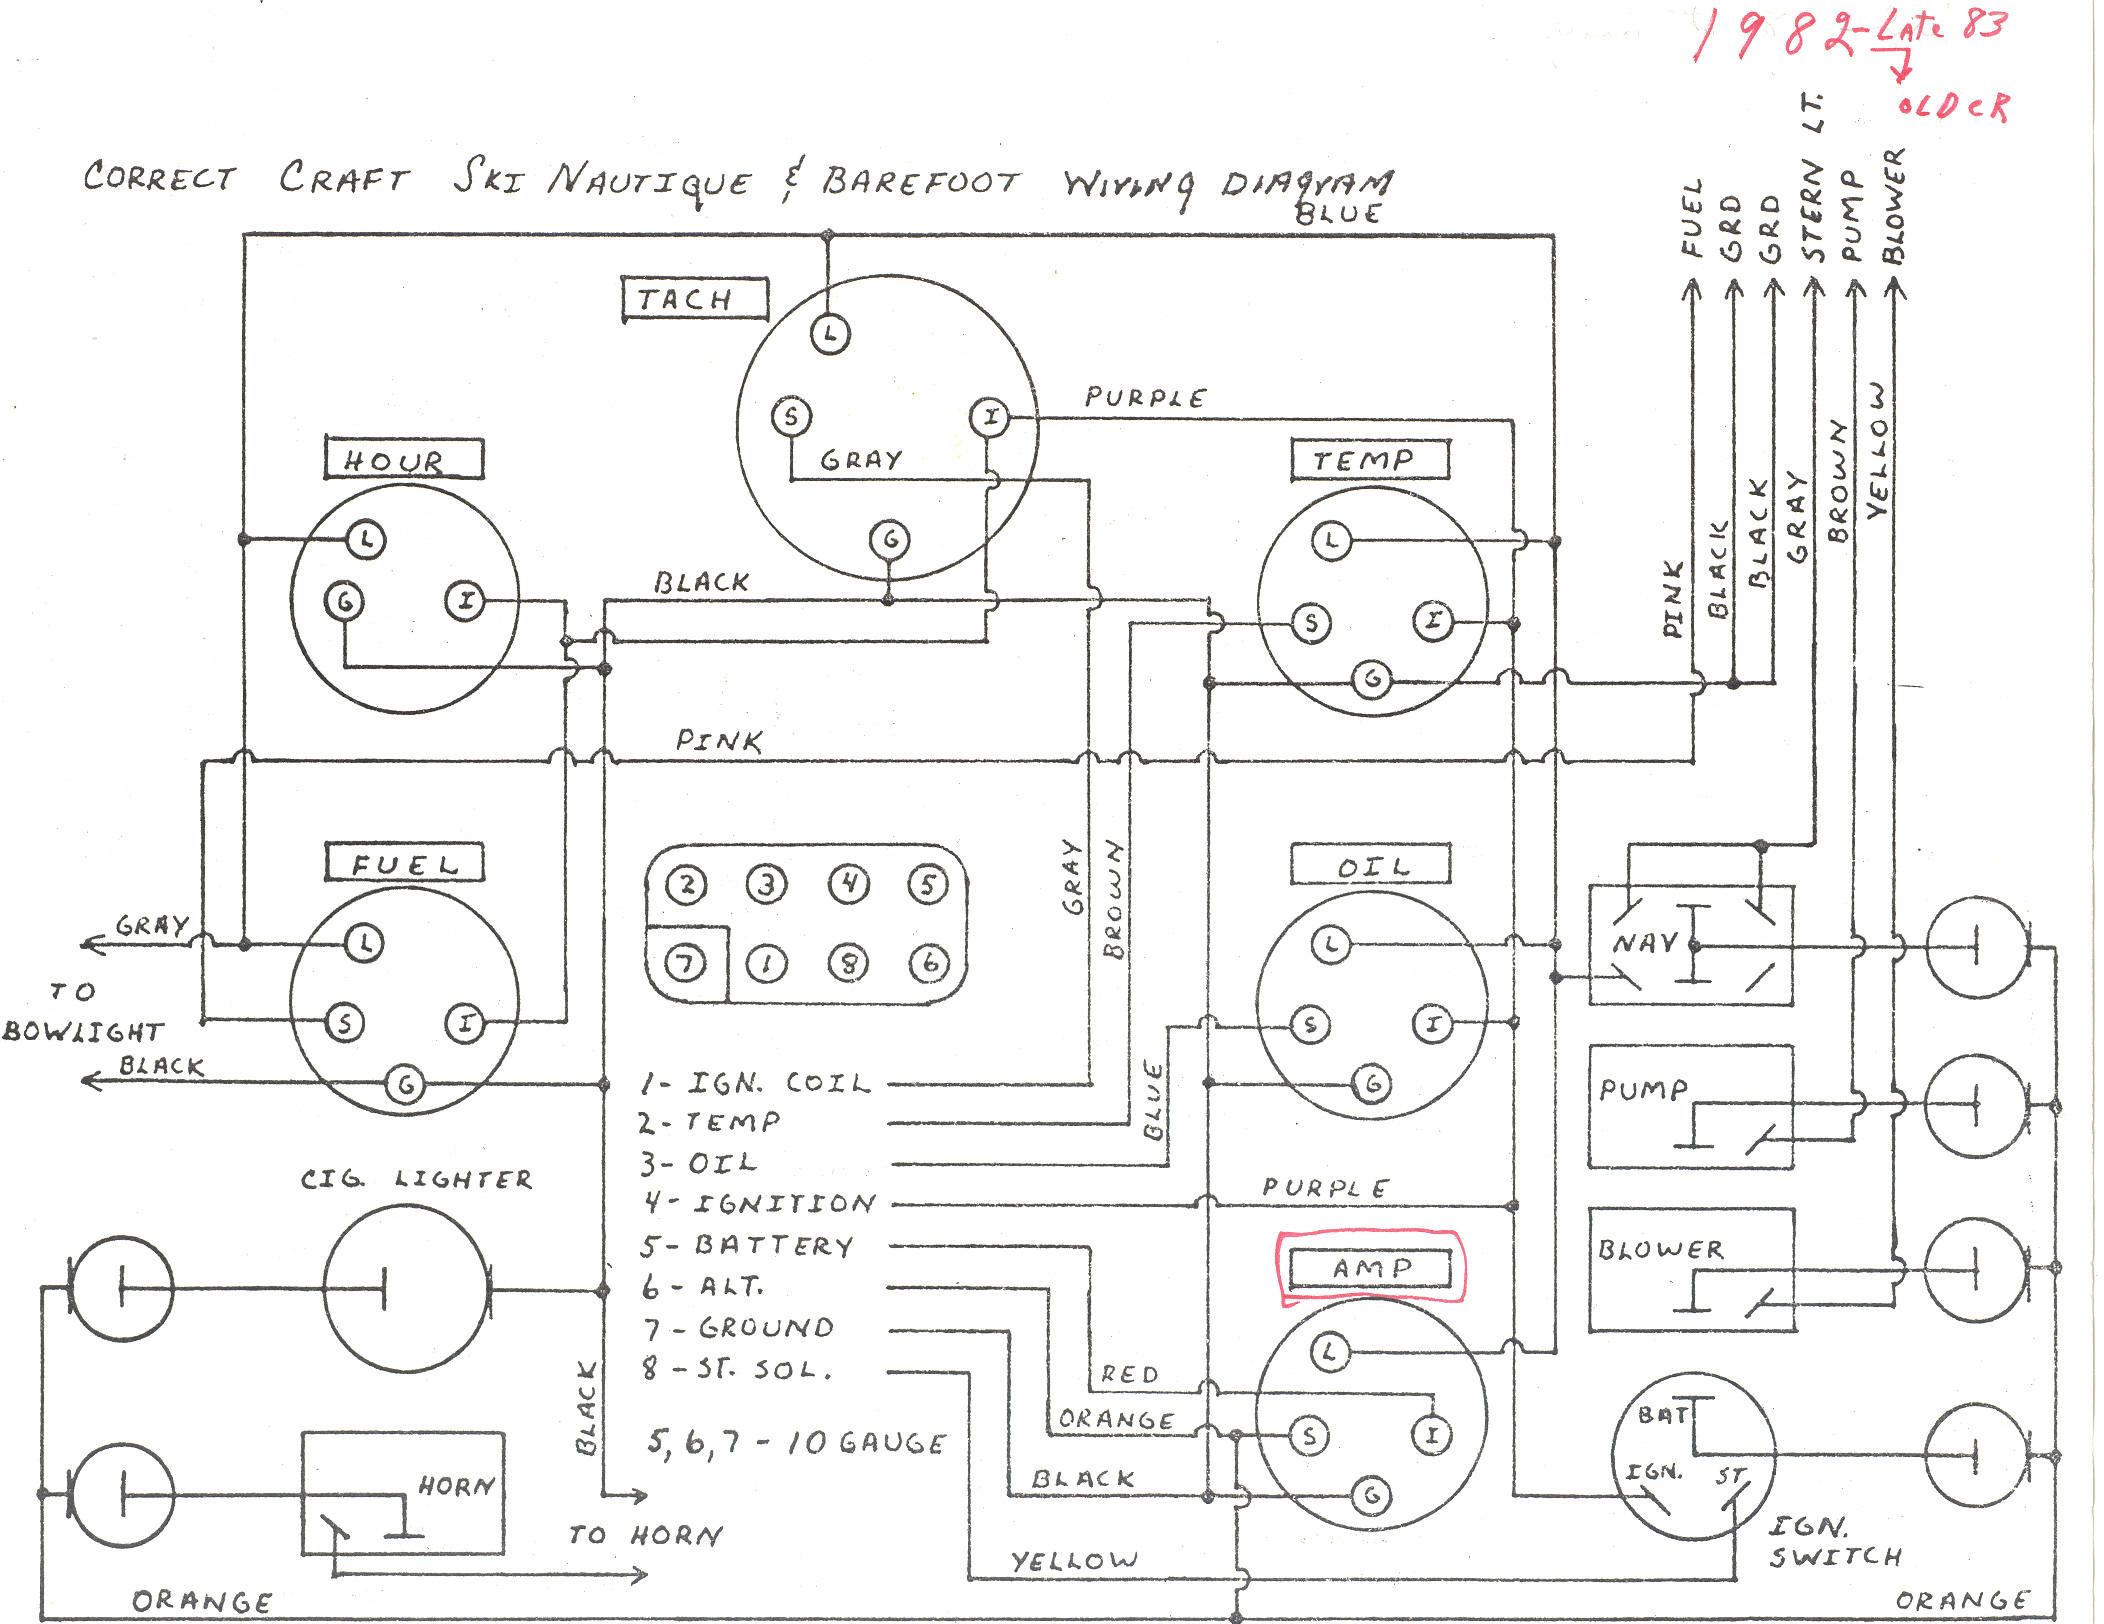 1983 Sea Ray 190 Wiring Schematic : 33 Wiring Diagram